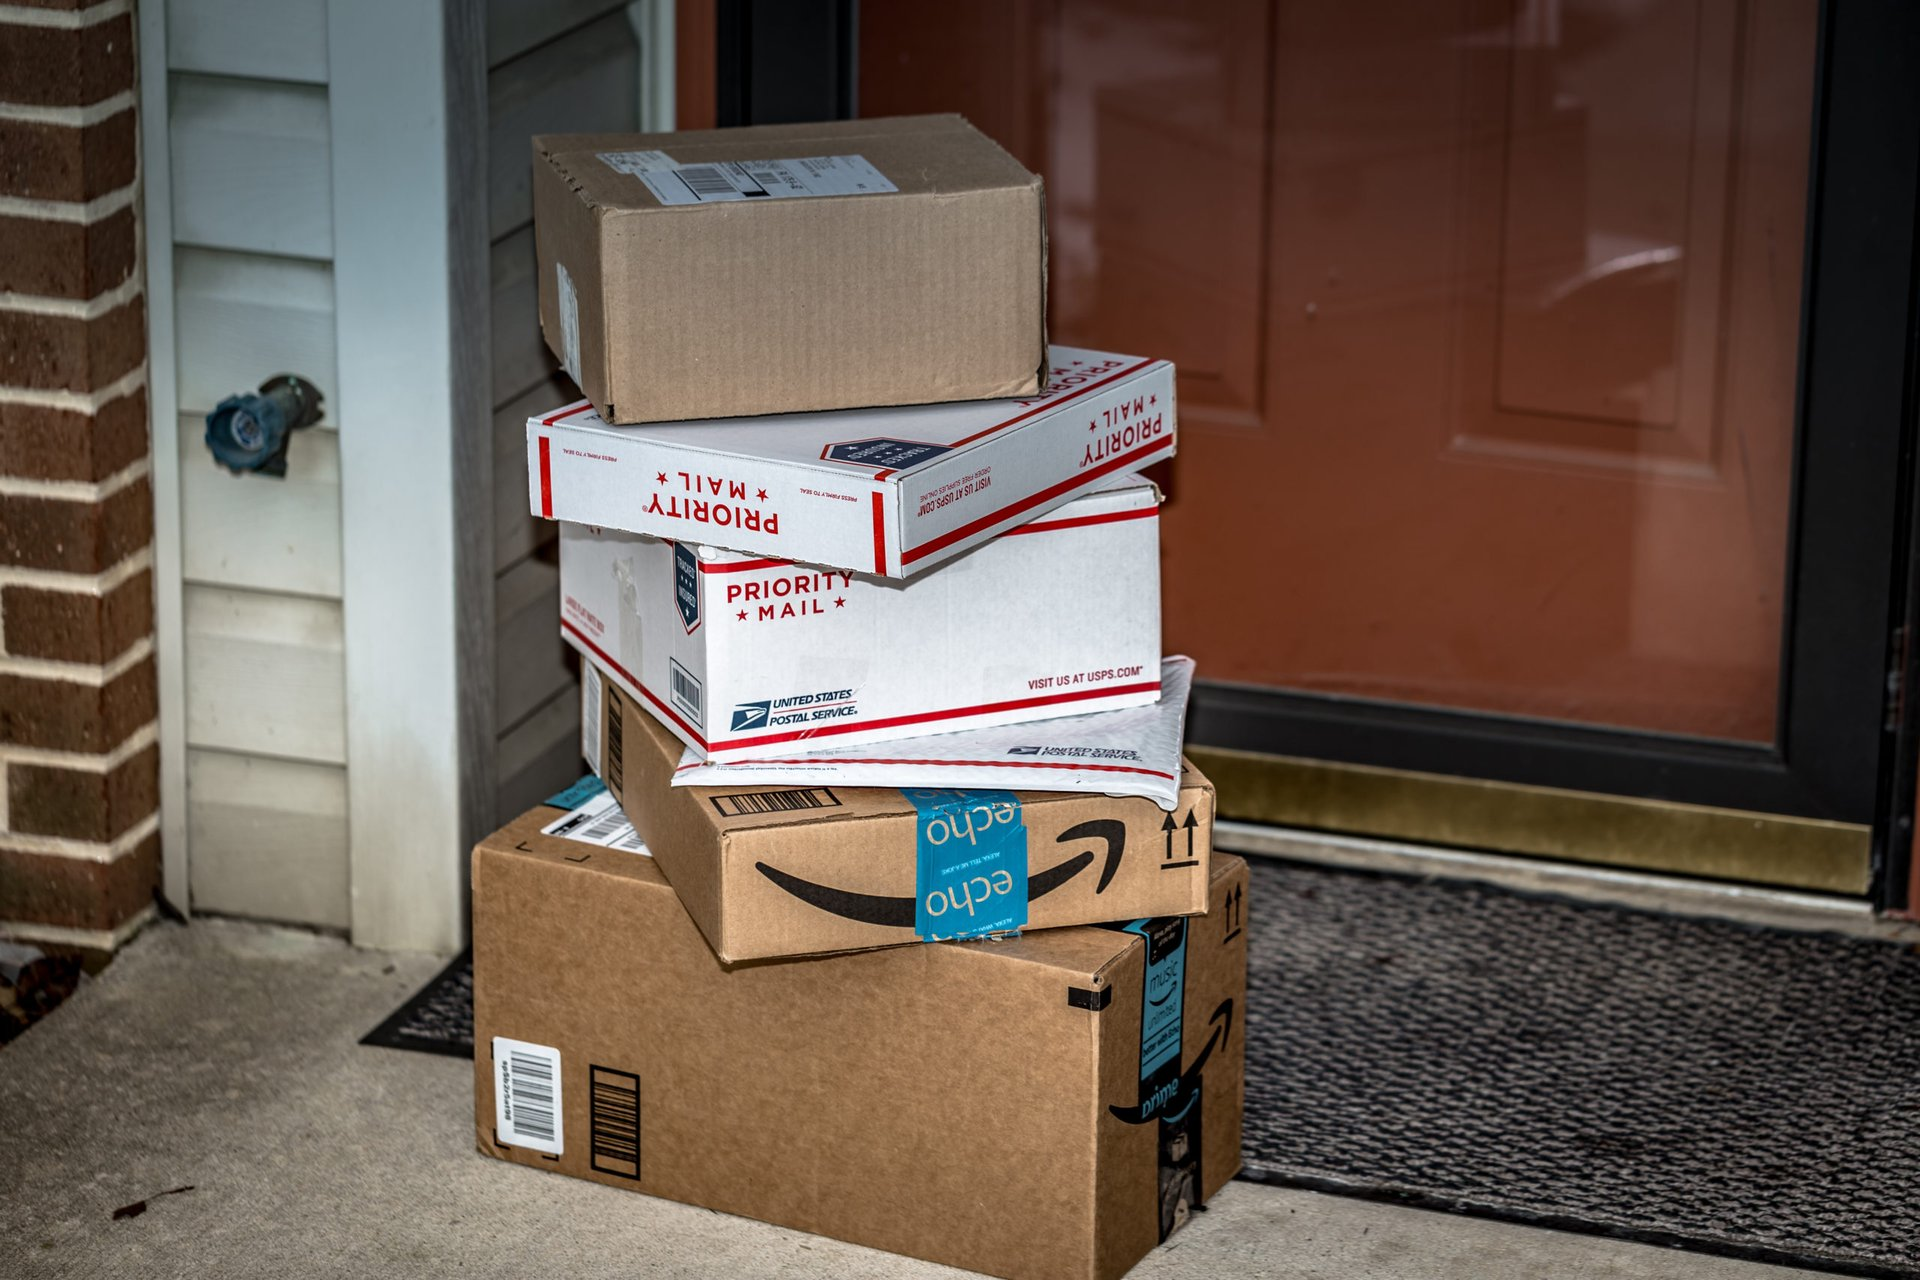 Packages delivered to a front door